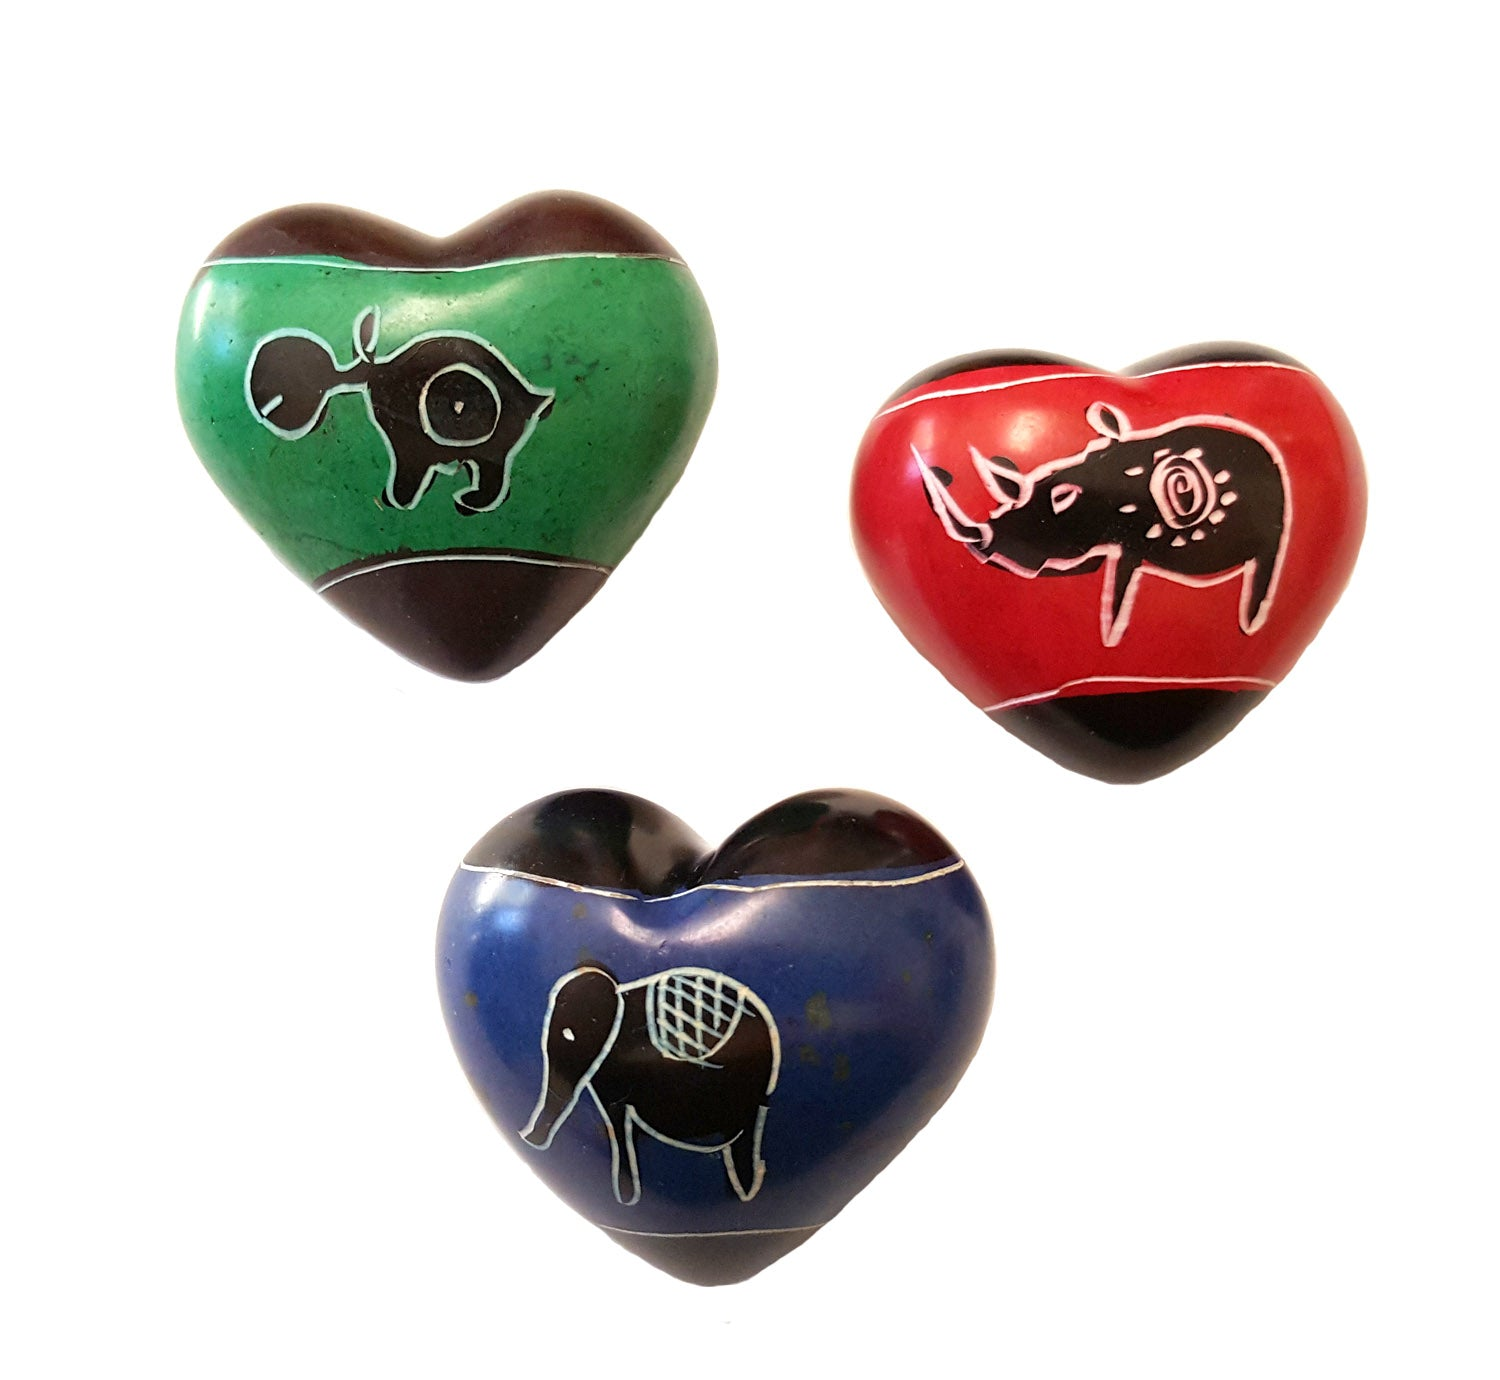 Soapstone Hearts with Assorted Animal Designs - Approx 4cm (1.5 inch)